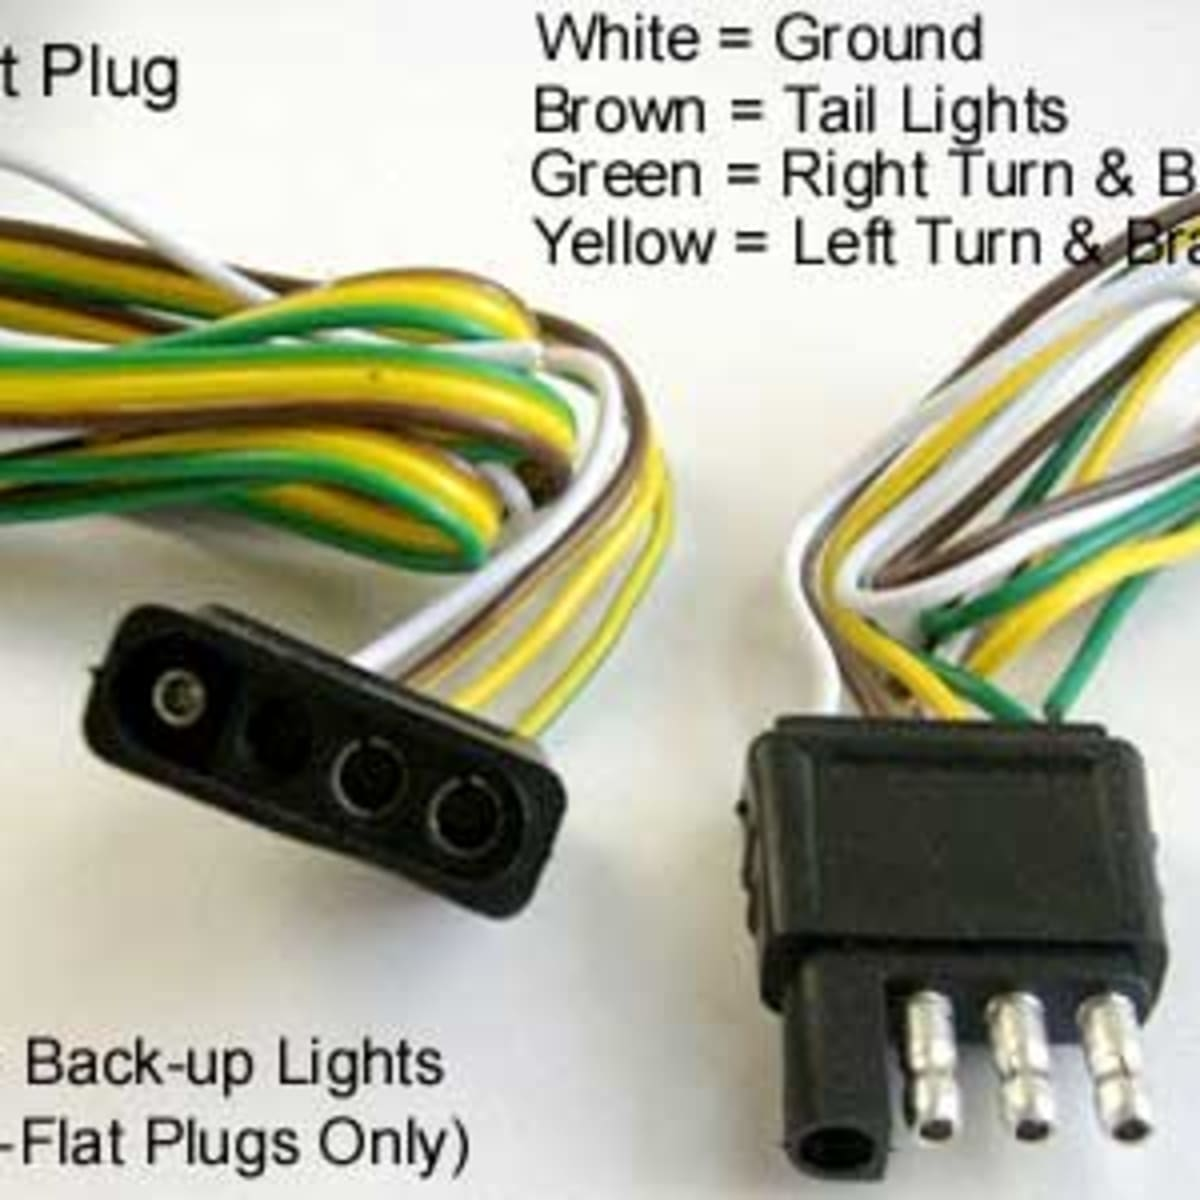 Tips For Installing 4 Pin Trailer Wiring Axleaddict A Community Of Car Lovers Enthusiasts And Mechanics Sharing Our Auto Advice